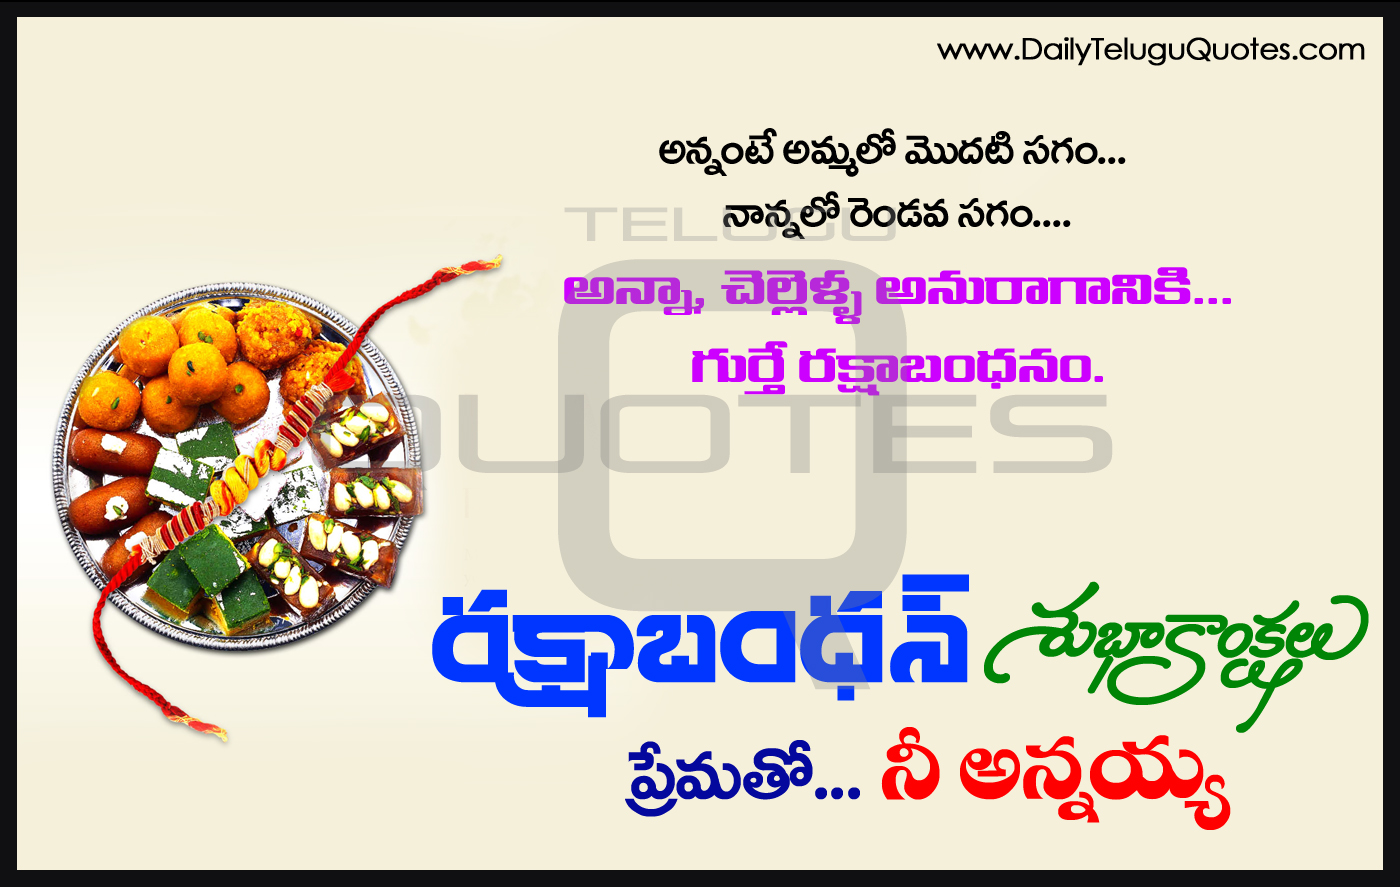 Best raksha bandhan wishes telugu quotes for sister hd wallpapers happy rakshabandan greetings in telugu quotes life inspiration kristyandbryce Image collections